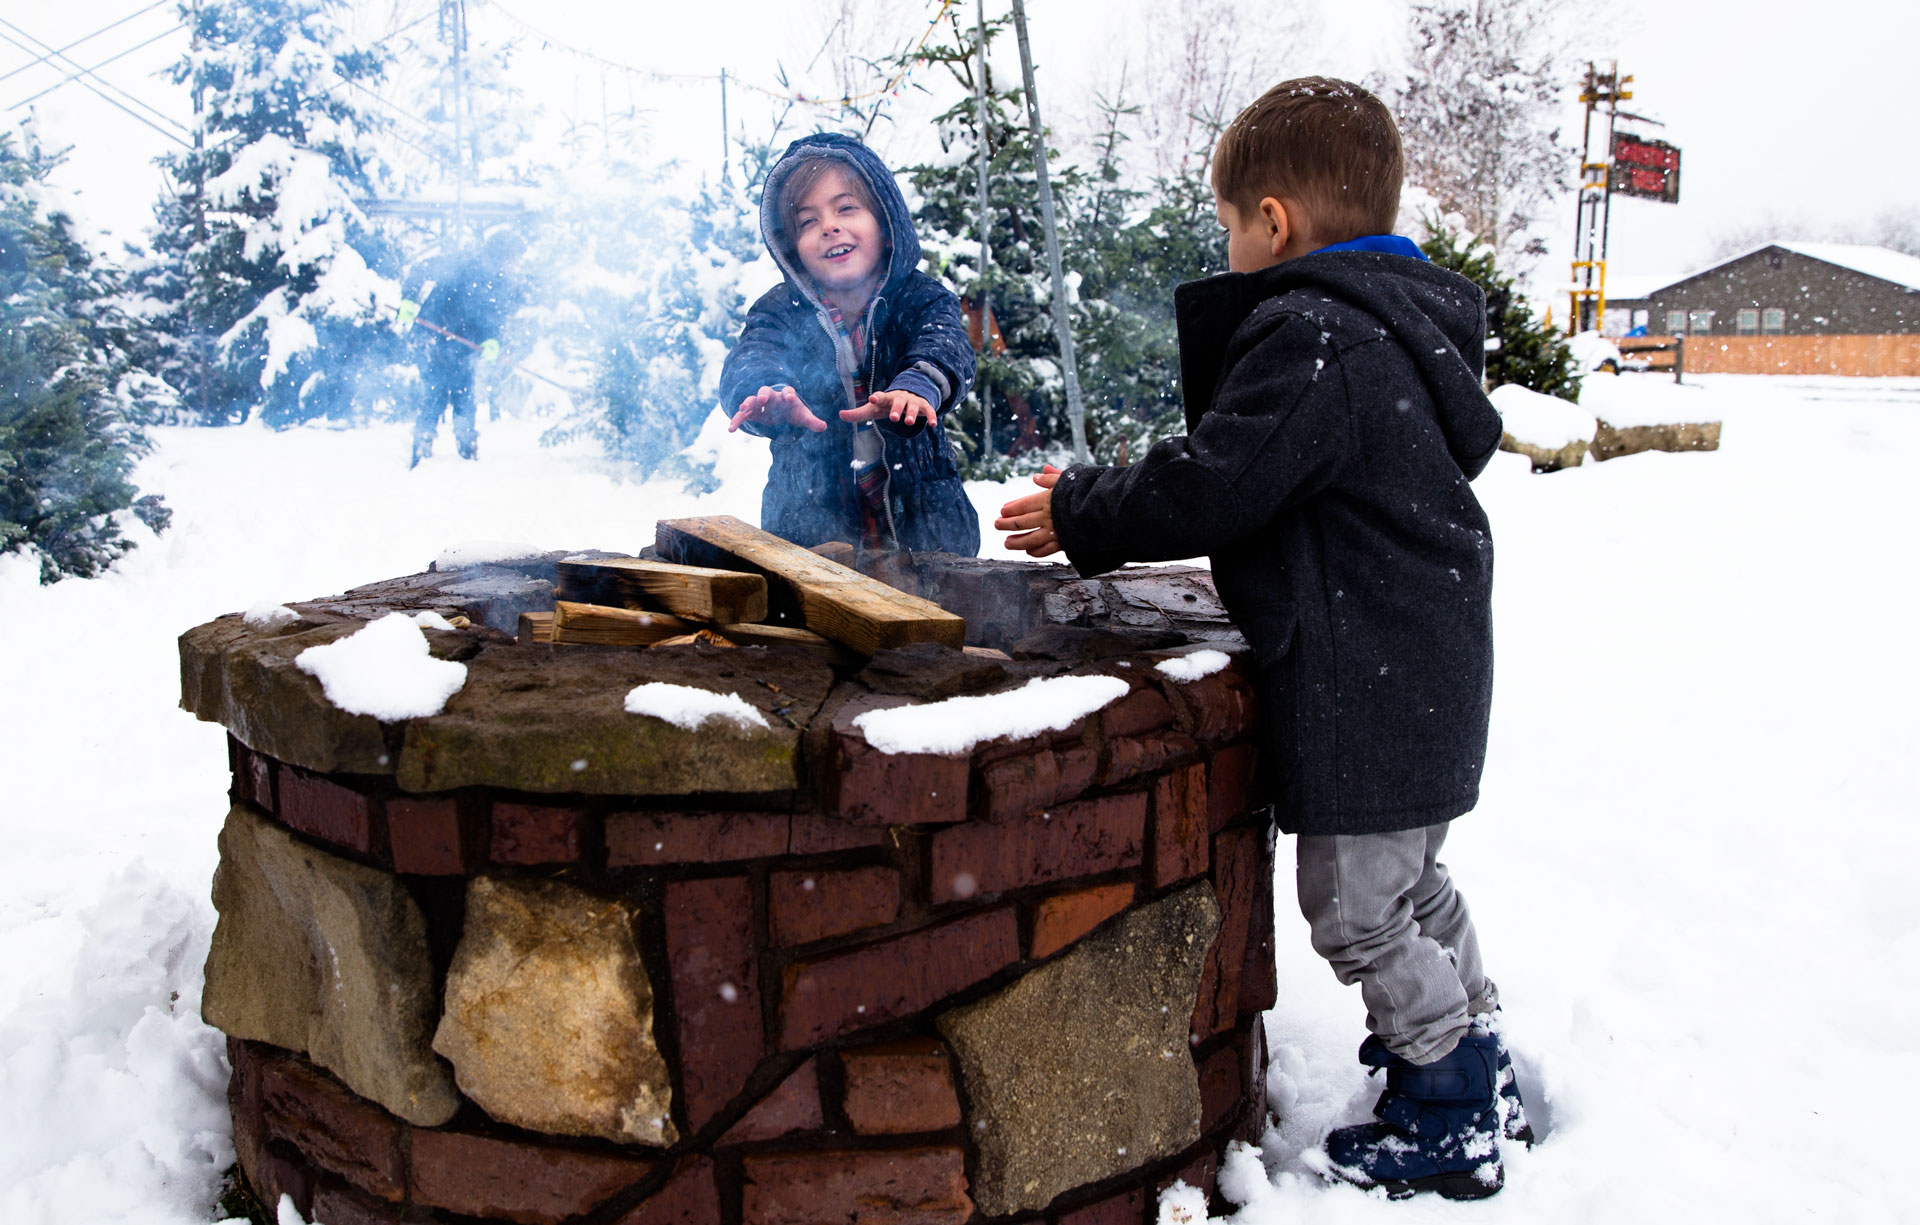 brother and sister putting hands by the fire to warm up as it snows around them